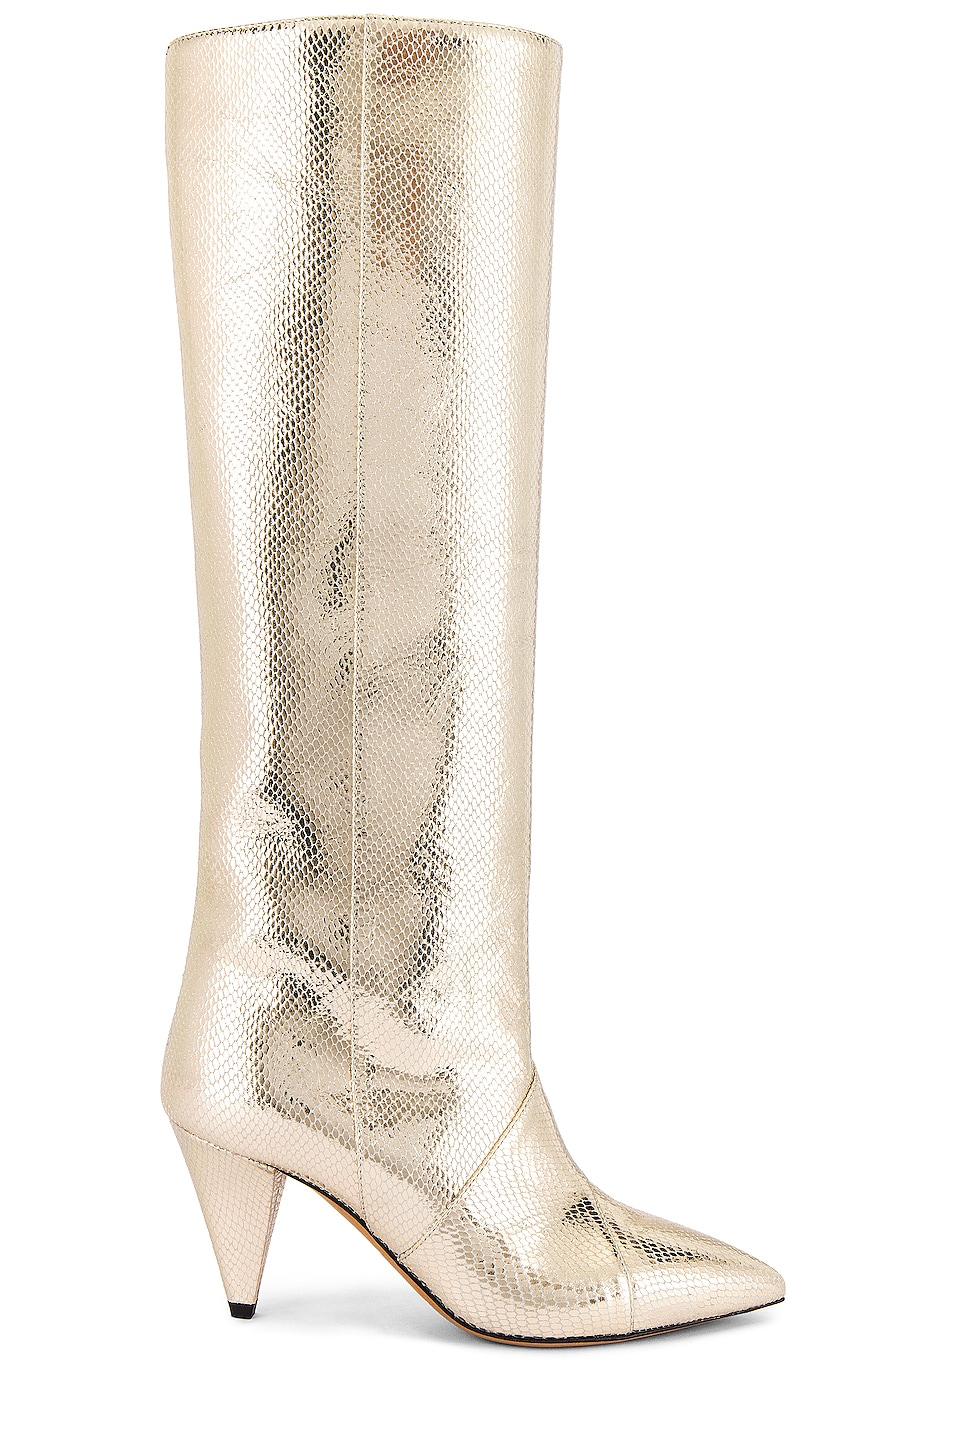 Isabel Marant Laomi Boot in Gold